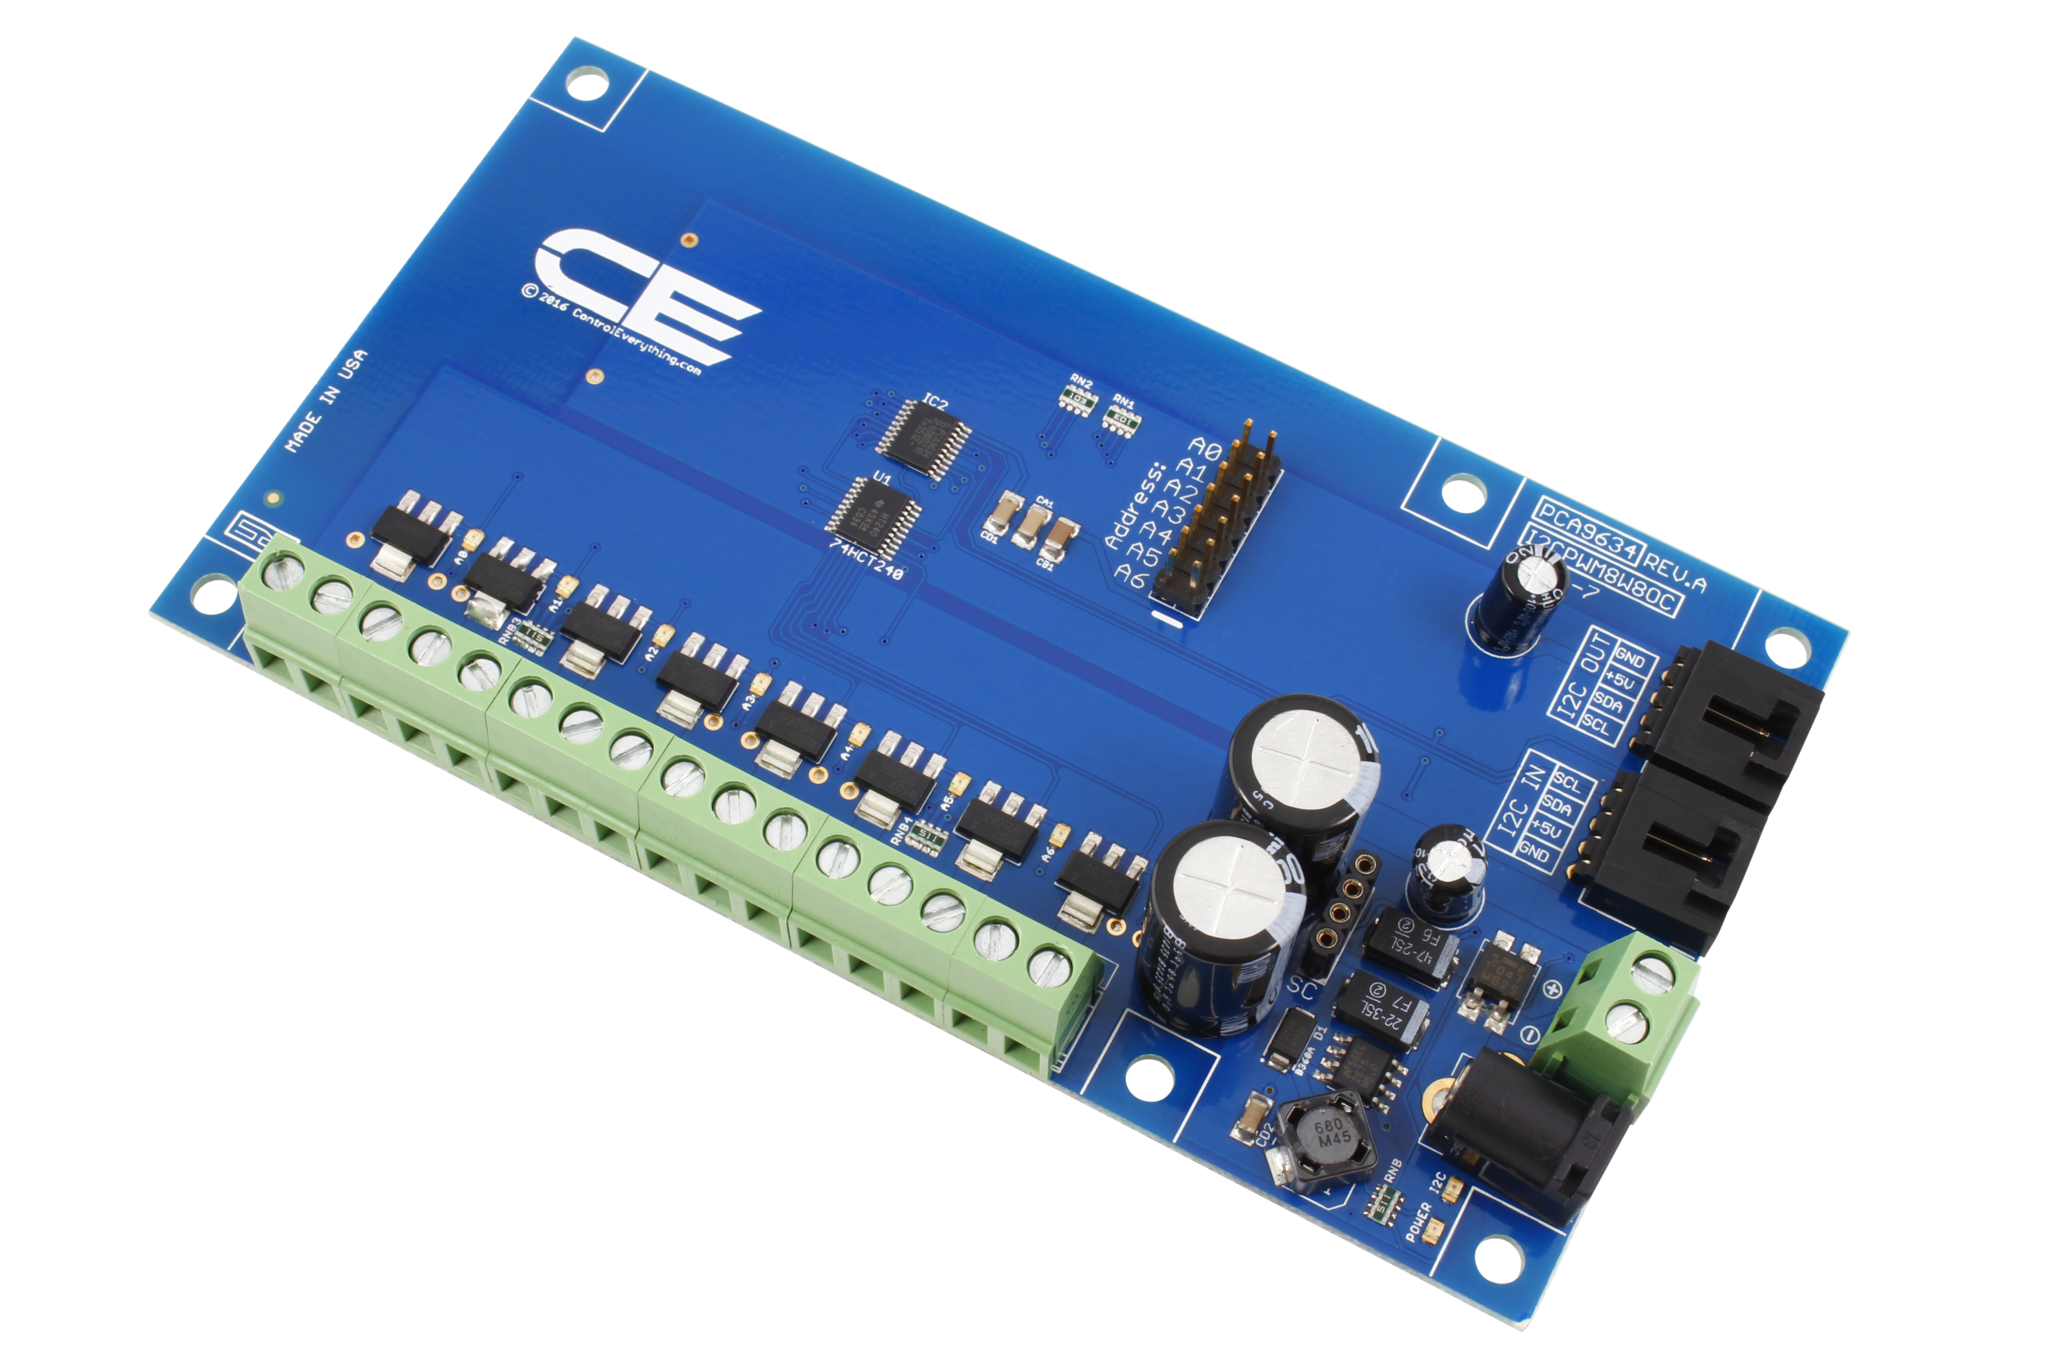 Pca9634 8 Channel 8w Open Collector Bit Pwm Fet Driver With I2c Driving N Mosfets A Microcontroller